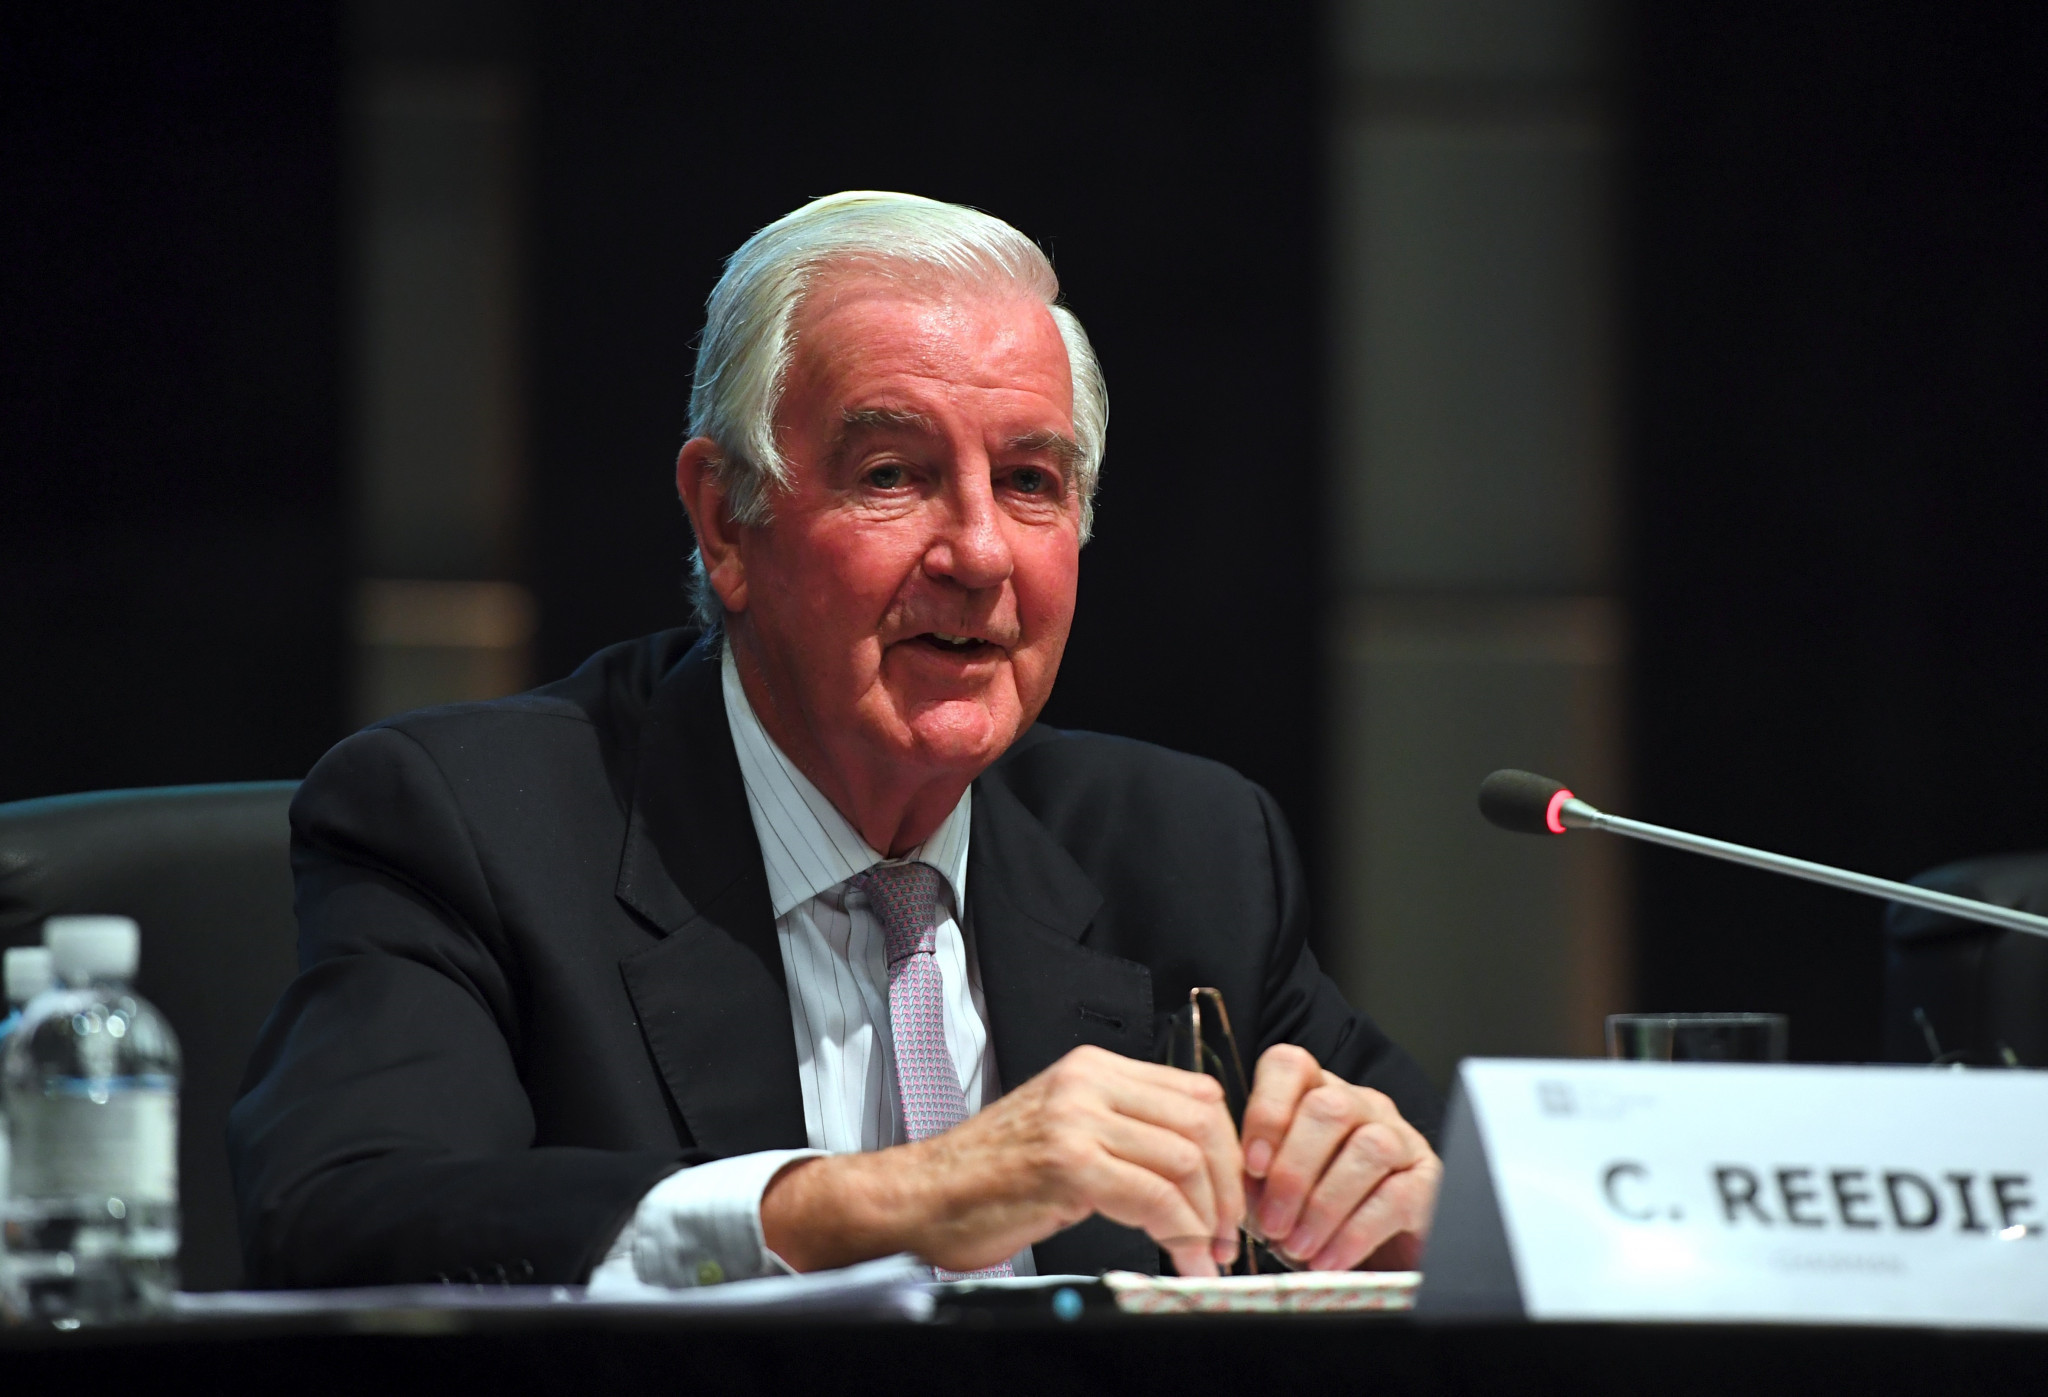 Sir Craig Reedie old insidethegames that it would be helpful if CAS now quickly prepared reports explaining the verdicts in two of the 39 cases ©Getty Images